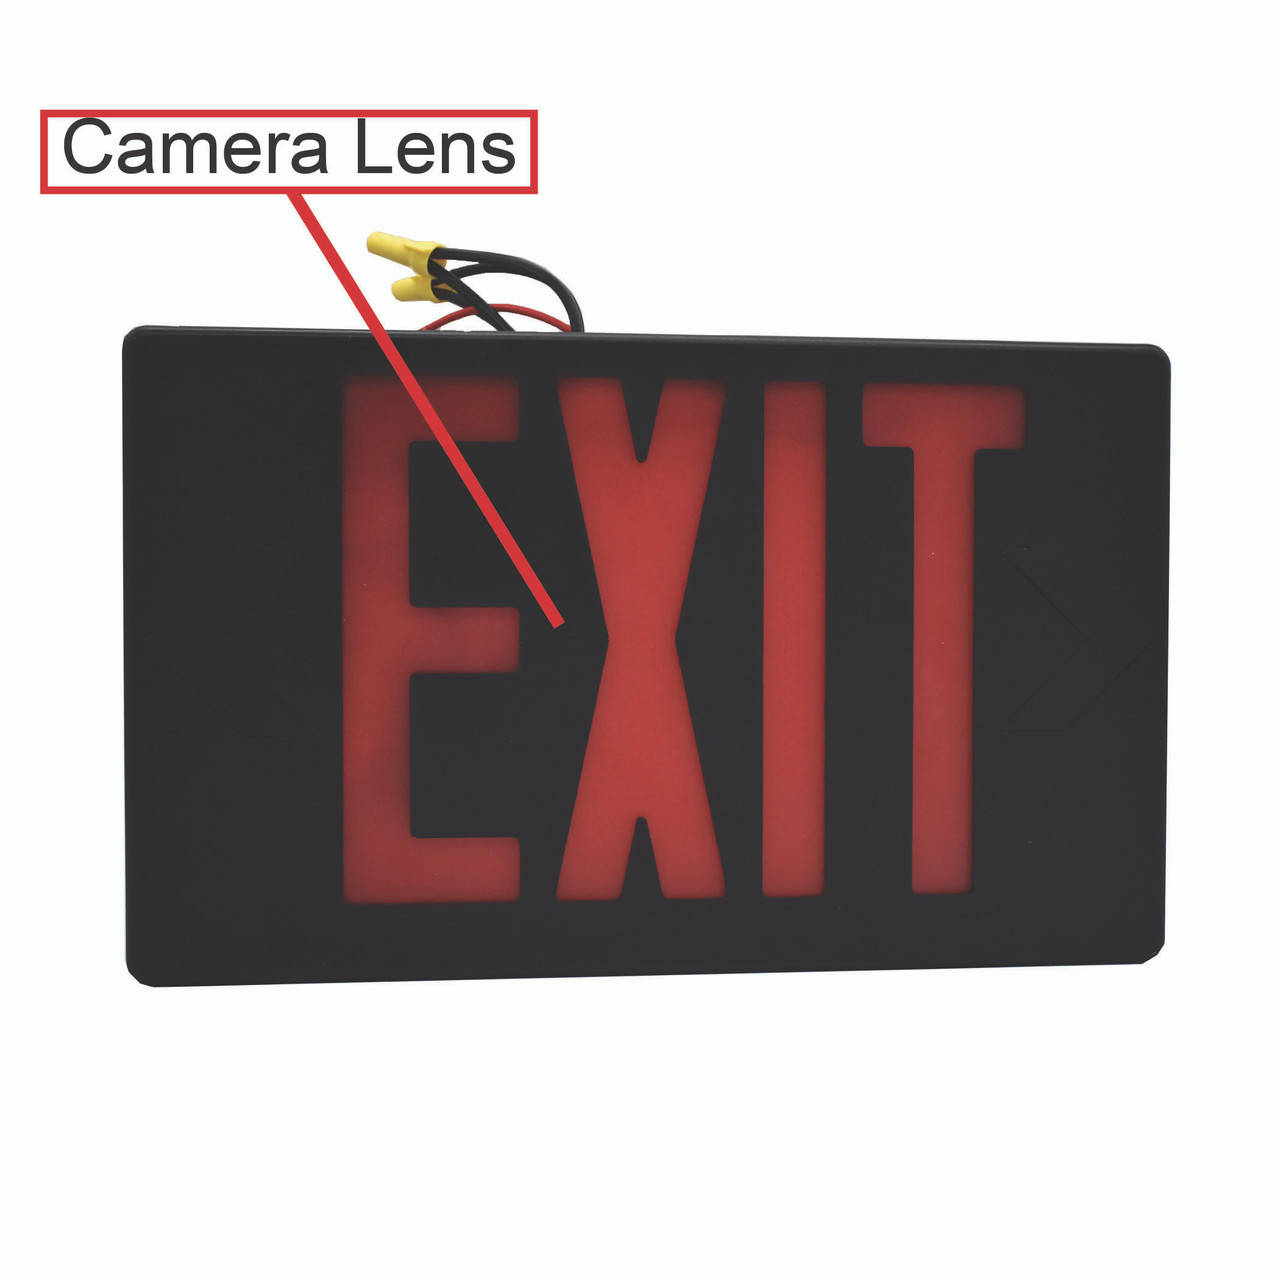 Exit Sign (Hardwired) 4K Hidden Camera w/ DVR & WiFi Remote View Fully Functional Exit Sign Records and Streams Hidden 4K HD VideoIMPORTANT: This device is meant to be installed into a hole that you will need to cut into your wall and installed professionally by an electrician. While the device gets hardwired into your electrical lines, the exit sign is fully functional to get electricity from. Hiding within the ordinary looking product is powerful camera with a wide 90º viewing angle. Because it's custom built, nothing will give away there is a hidden camera inside as you watch in secret most of your room, edge to edge without missing a thing.  All the video is recorded in mp4 format using h.264 compression into time/date stamped files for easy saving, emailing or playback on your PC or Mac computer.The camera can easily be connected to Wifi so you can monitor it remotely anywhere you can get an internet connection. It has a Point to Point function that allows you to connect locally via the smartphone app even when there is no wifi available. It streams 4K resolution video at up to 30 FPS and record 720p video continuously or use the motion detection setting. The handy auto-overwrite feature makes it easy to use on a daily basis.Record Weeks Of HD Video Onto A Removable SD Card Using the included 128GB SD card, youll get about 640+ hours of continuous video, or with motion activation mode only, you'll never run out of video memory. The choice is yours. Additionally, youll be able to hot-swap SD cards by easily removing a filled up one, and replacing it with a fresh blank card. This way youll quickly be able to bring the footage back to your computer for review without ever missing important video.Wifi Live Remote Viewing On Smart Phone, PC or TabletNo techies needed! Connecting to your live remote view camera has never been more easy. Now you can quickly check in on your camera from anywhere in the world with live wifi viewing.Time/Date Stamp For Quick ID Provides Unquestionable Proof All of the video and recorded video files h